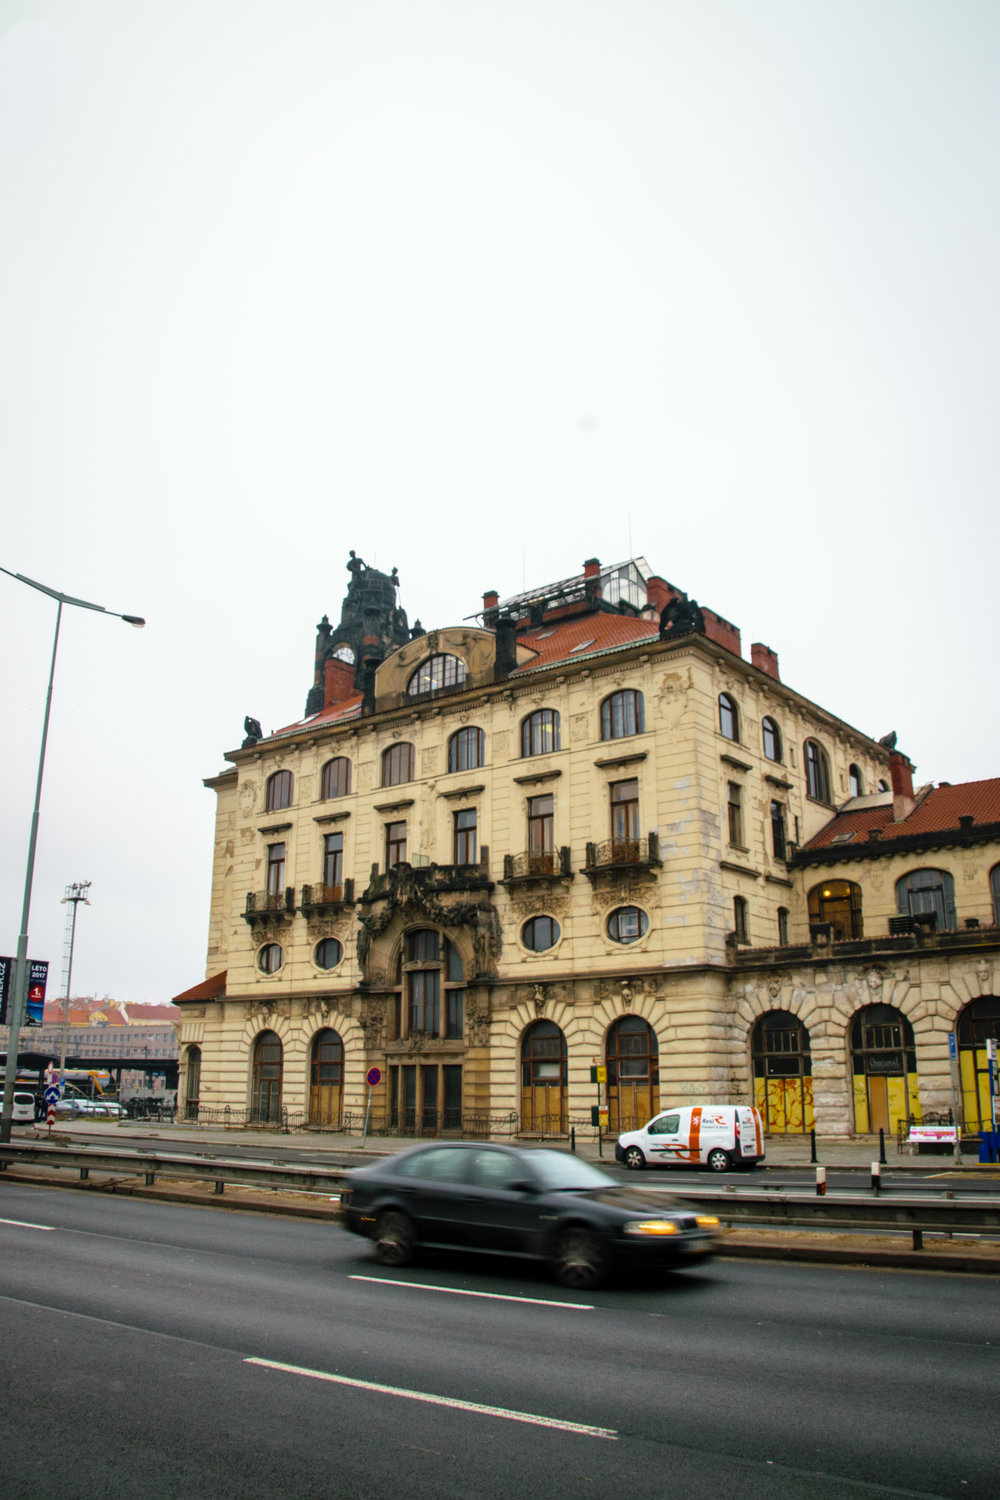 wing of central train station